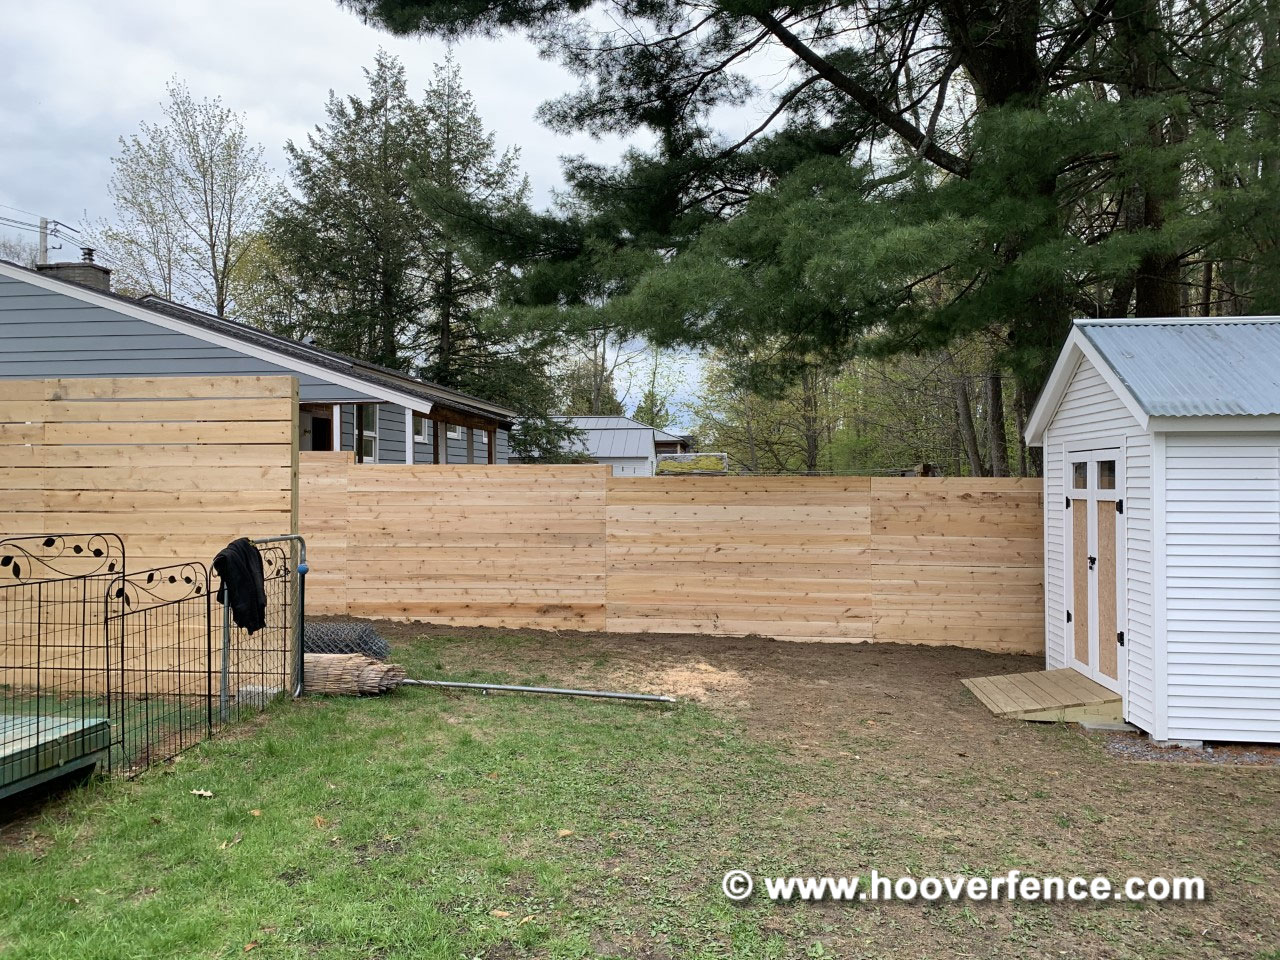 Customer Install - Chain Link Fence Converted to Horizontal Board Wood Privacy Fence - Burlington, VT